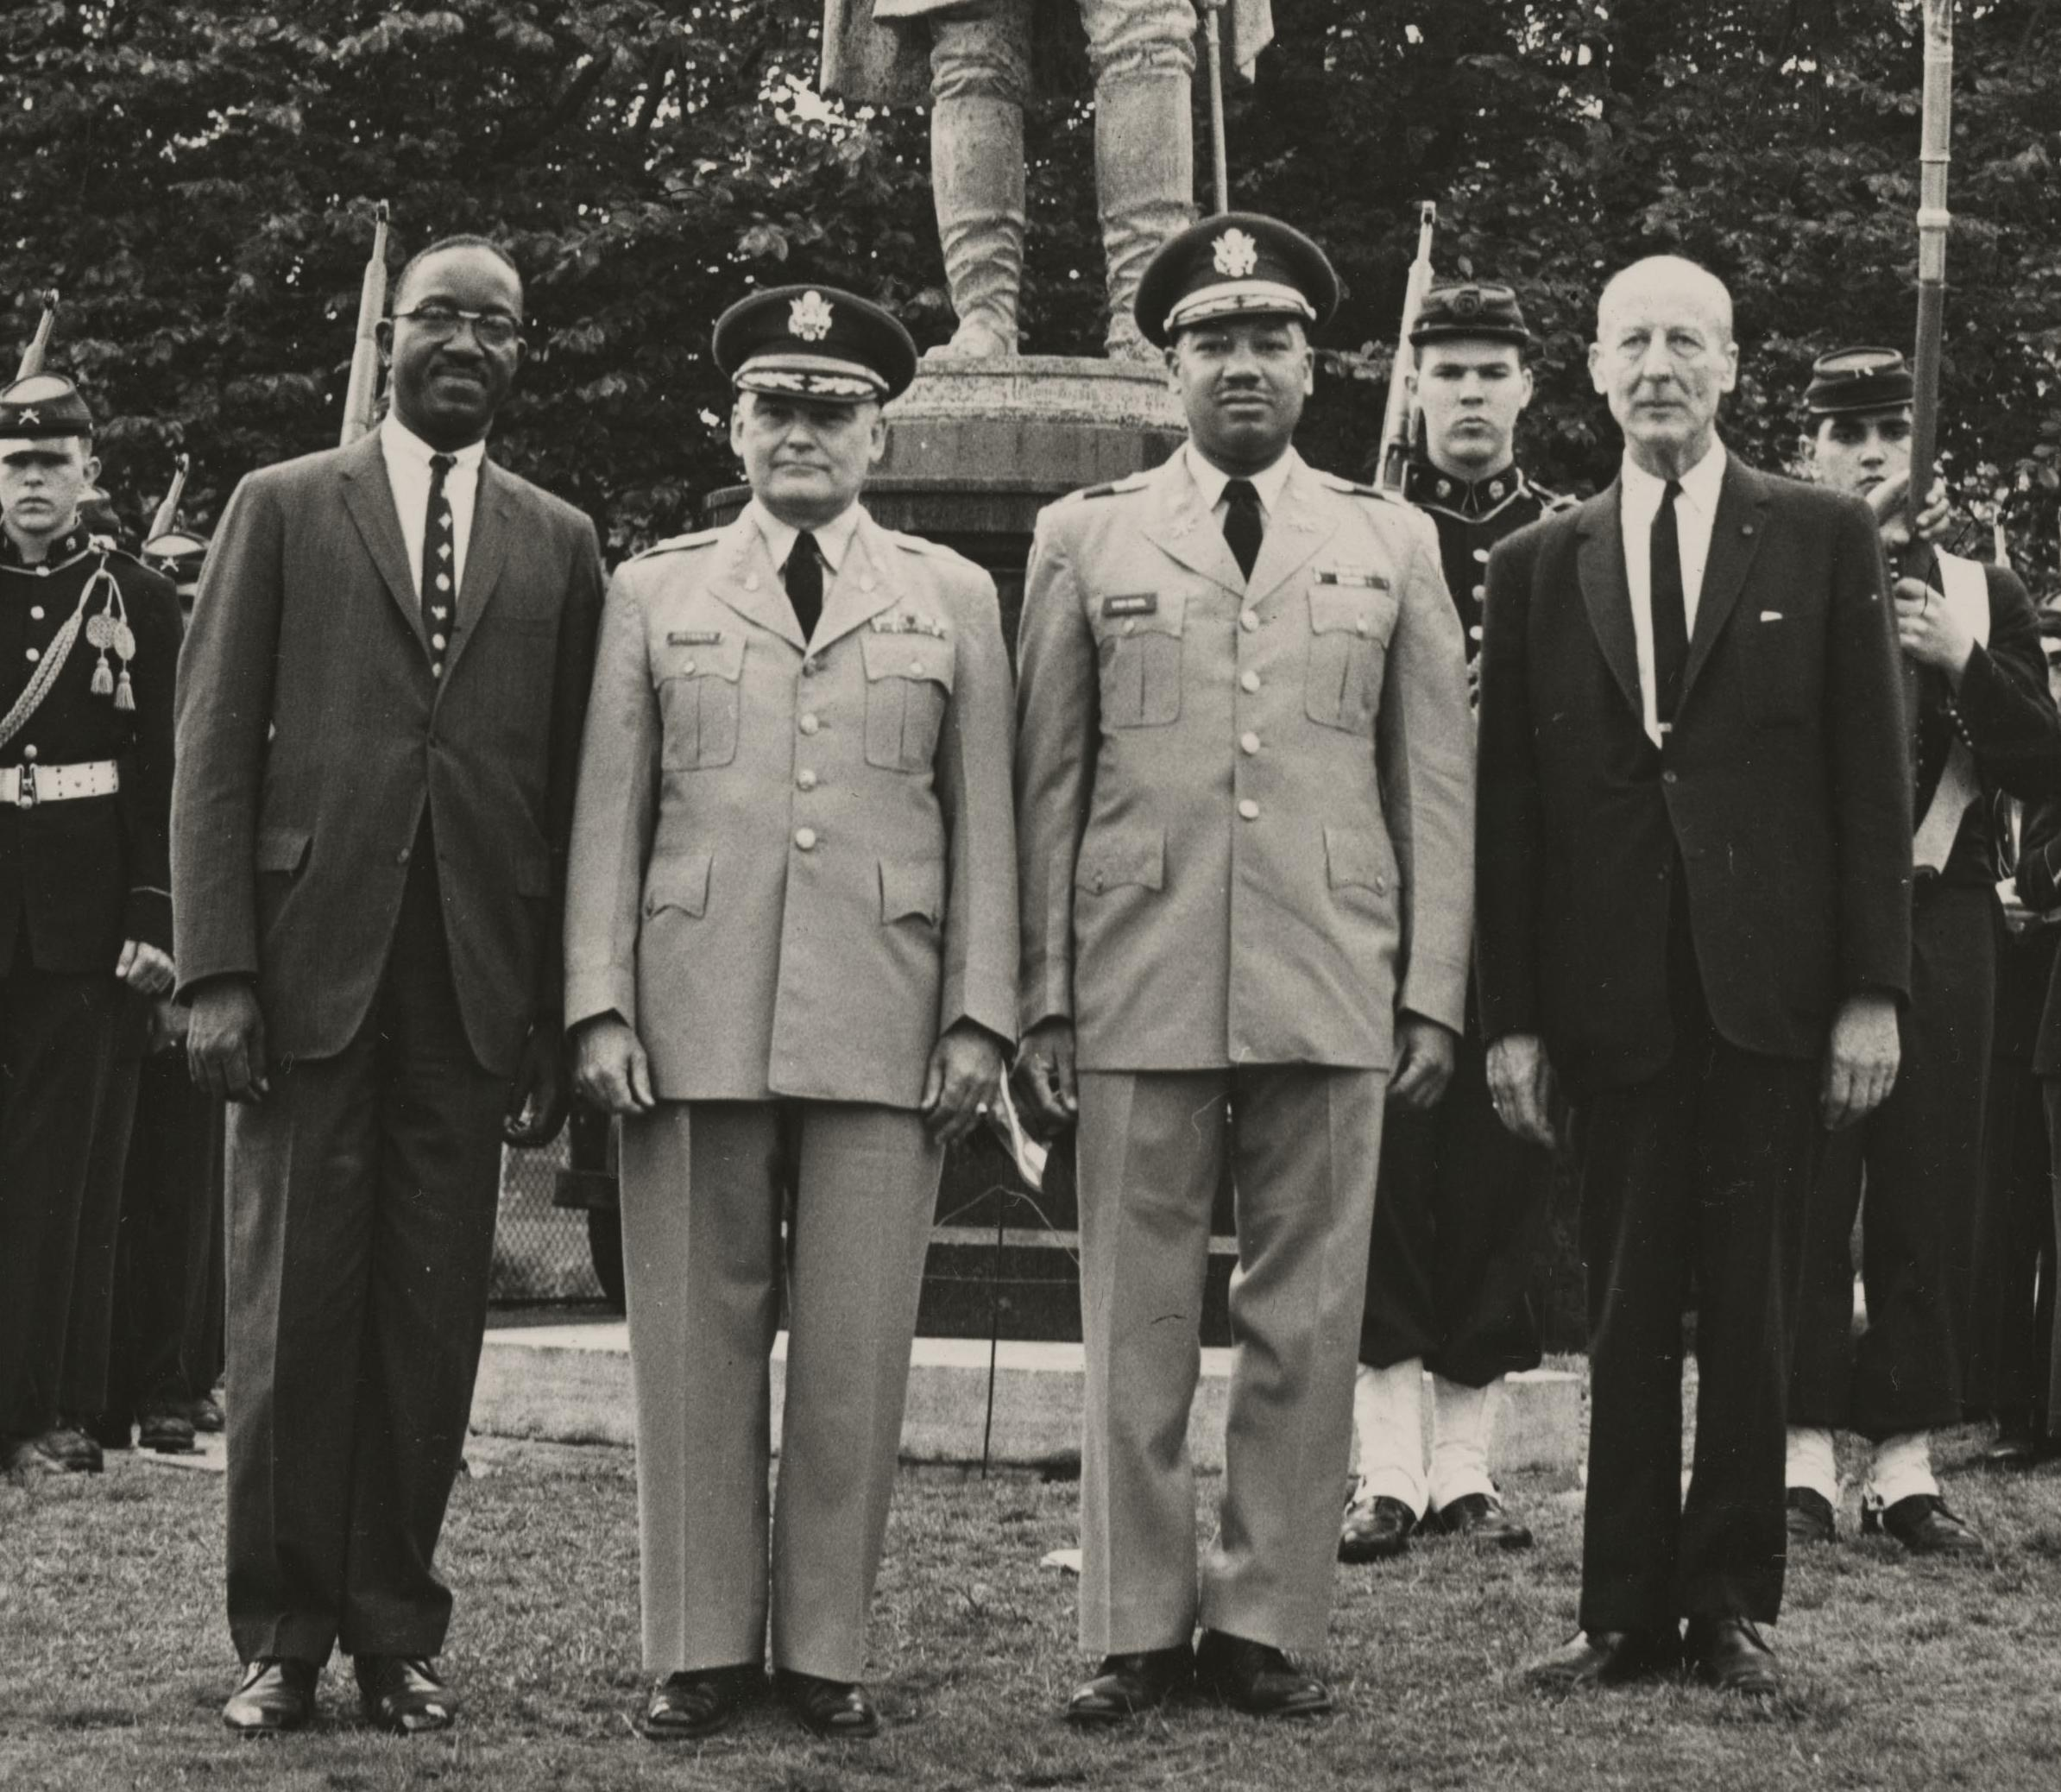 African American New York National Guard Officer Stood Strong Against Racism in 1964